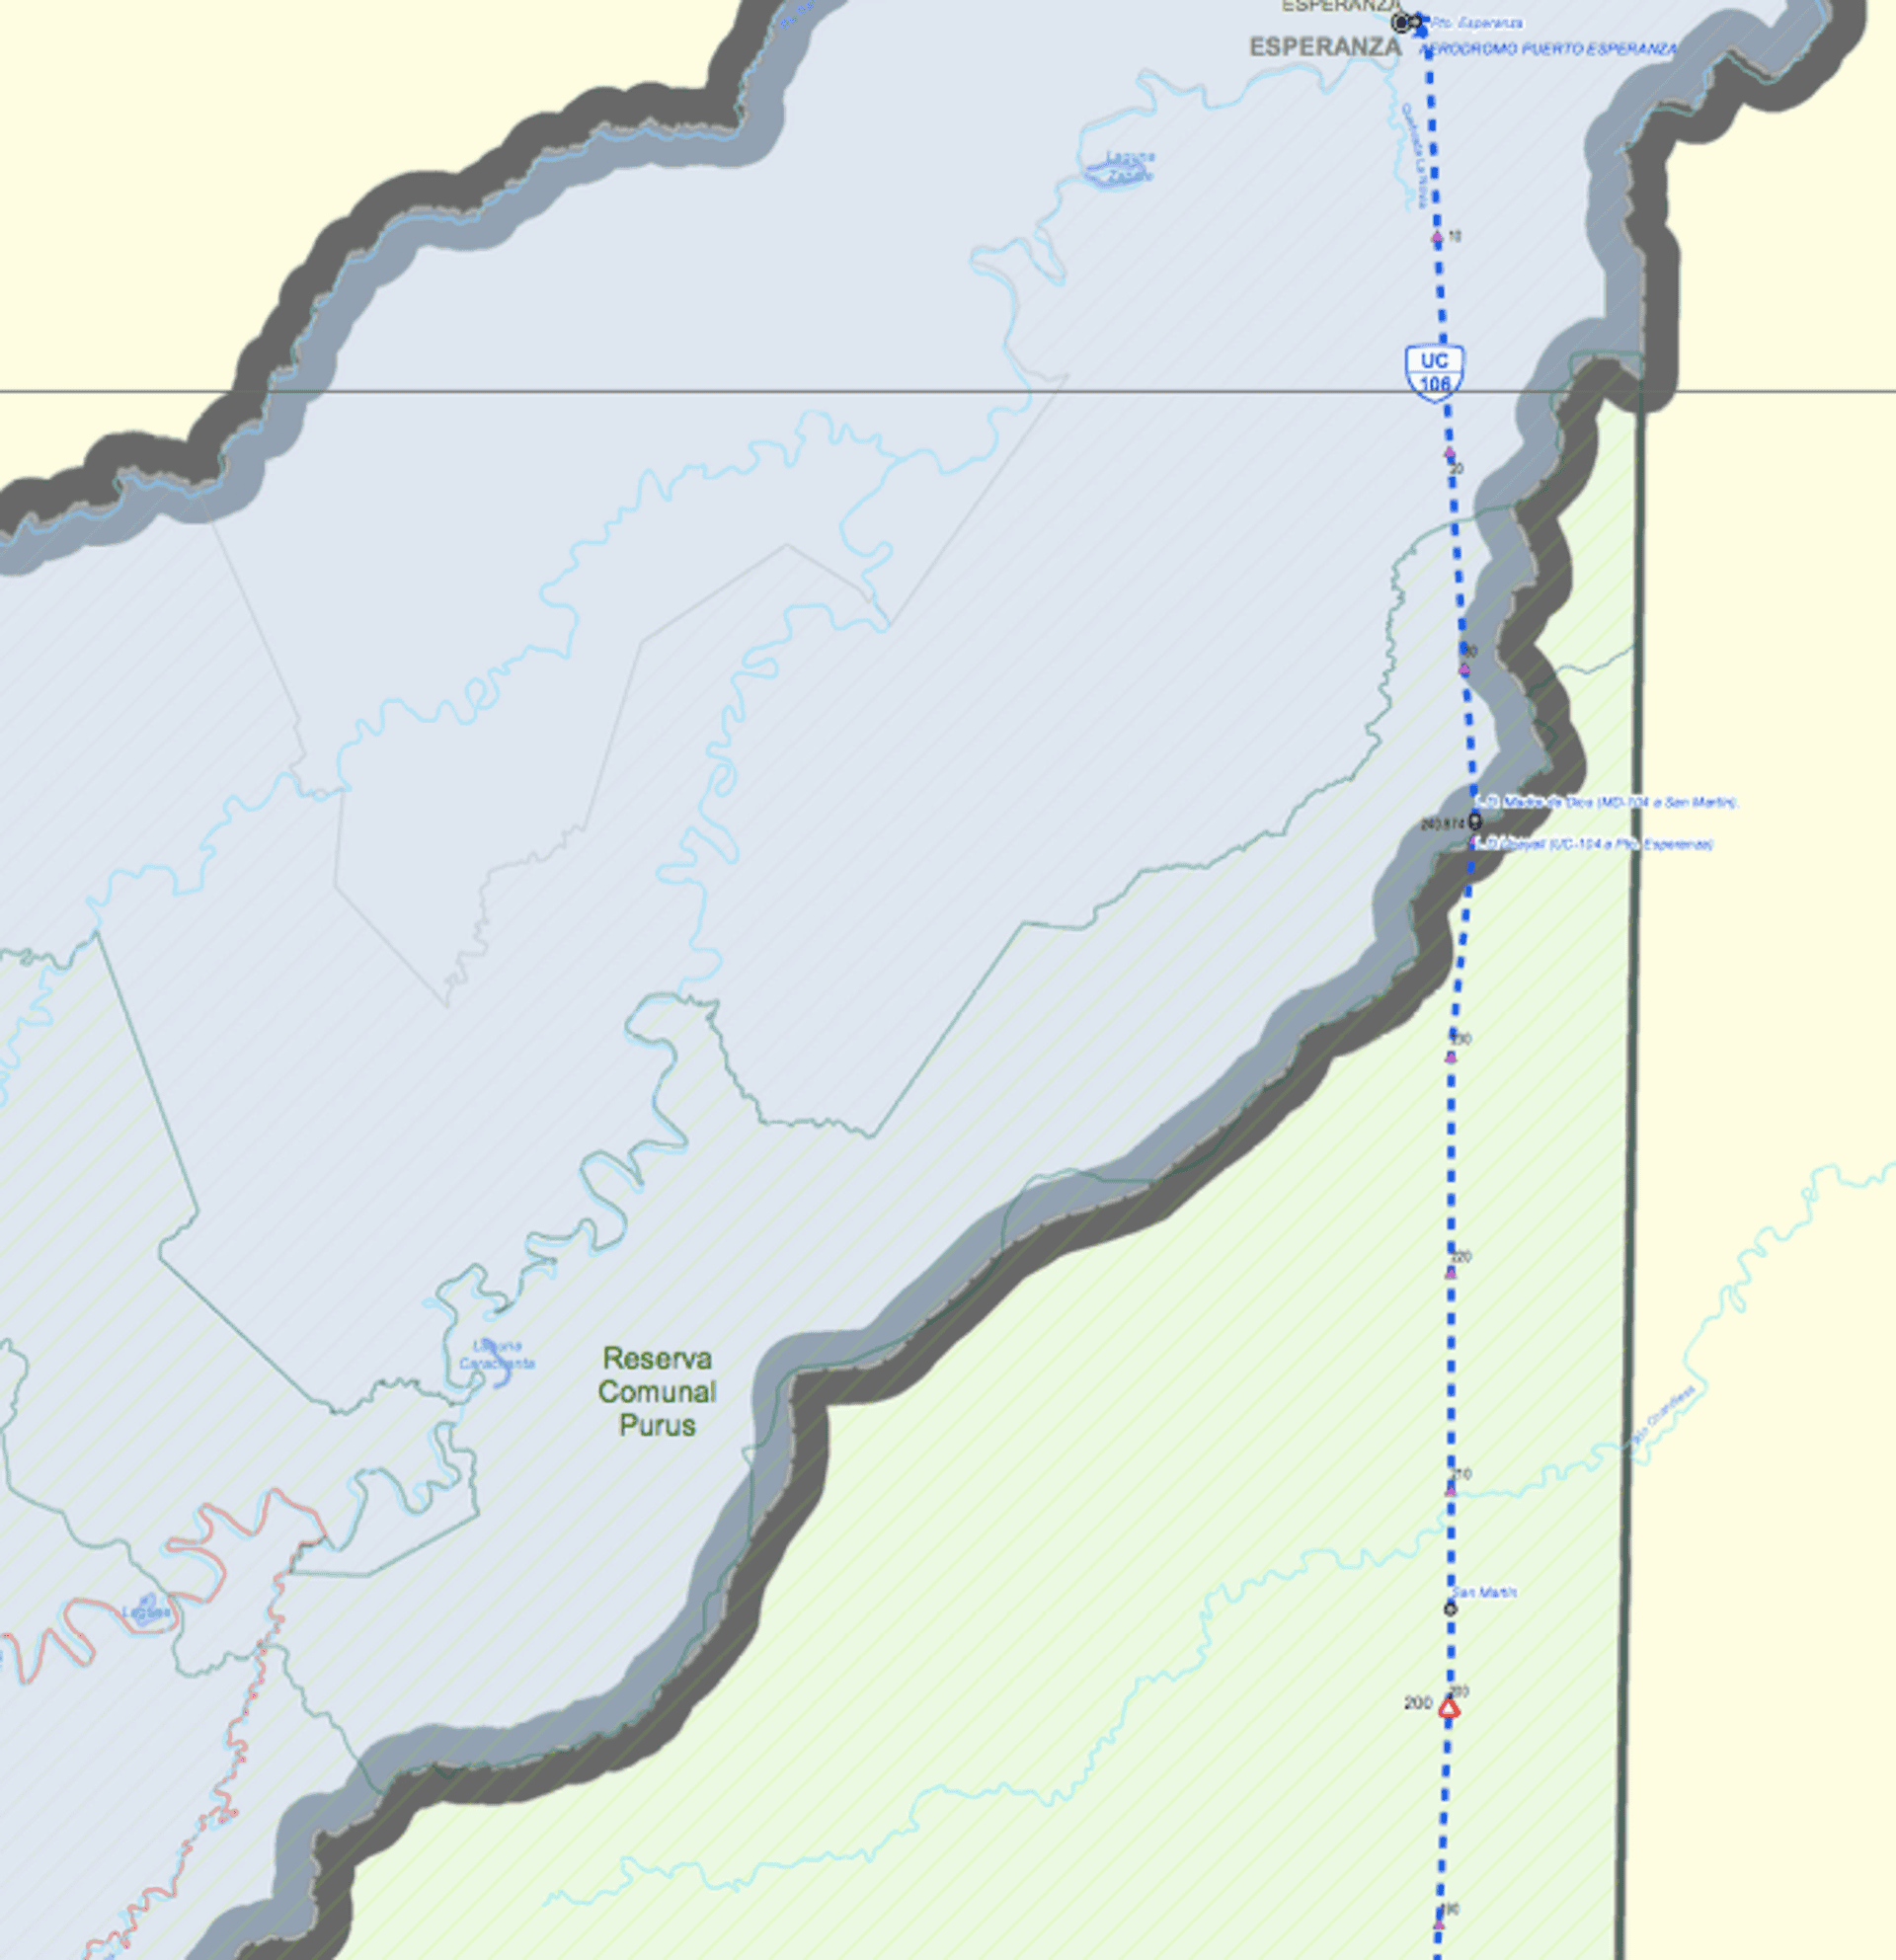 Detail from a Transport and Communications Ministry map showing the projected highway from Puerto Esperanza towards Iñapari. It would cross the Purus communal reserve and enter the Alto Purus national park (marked in green), before then entering the Madre de Dios reserve (not shown). Photograph: Peru's Transport and Communications Ministry